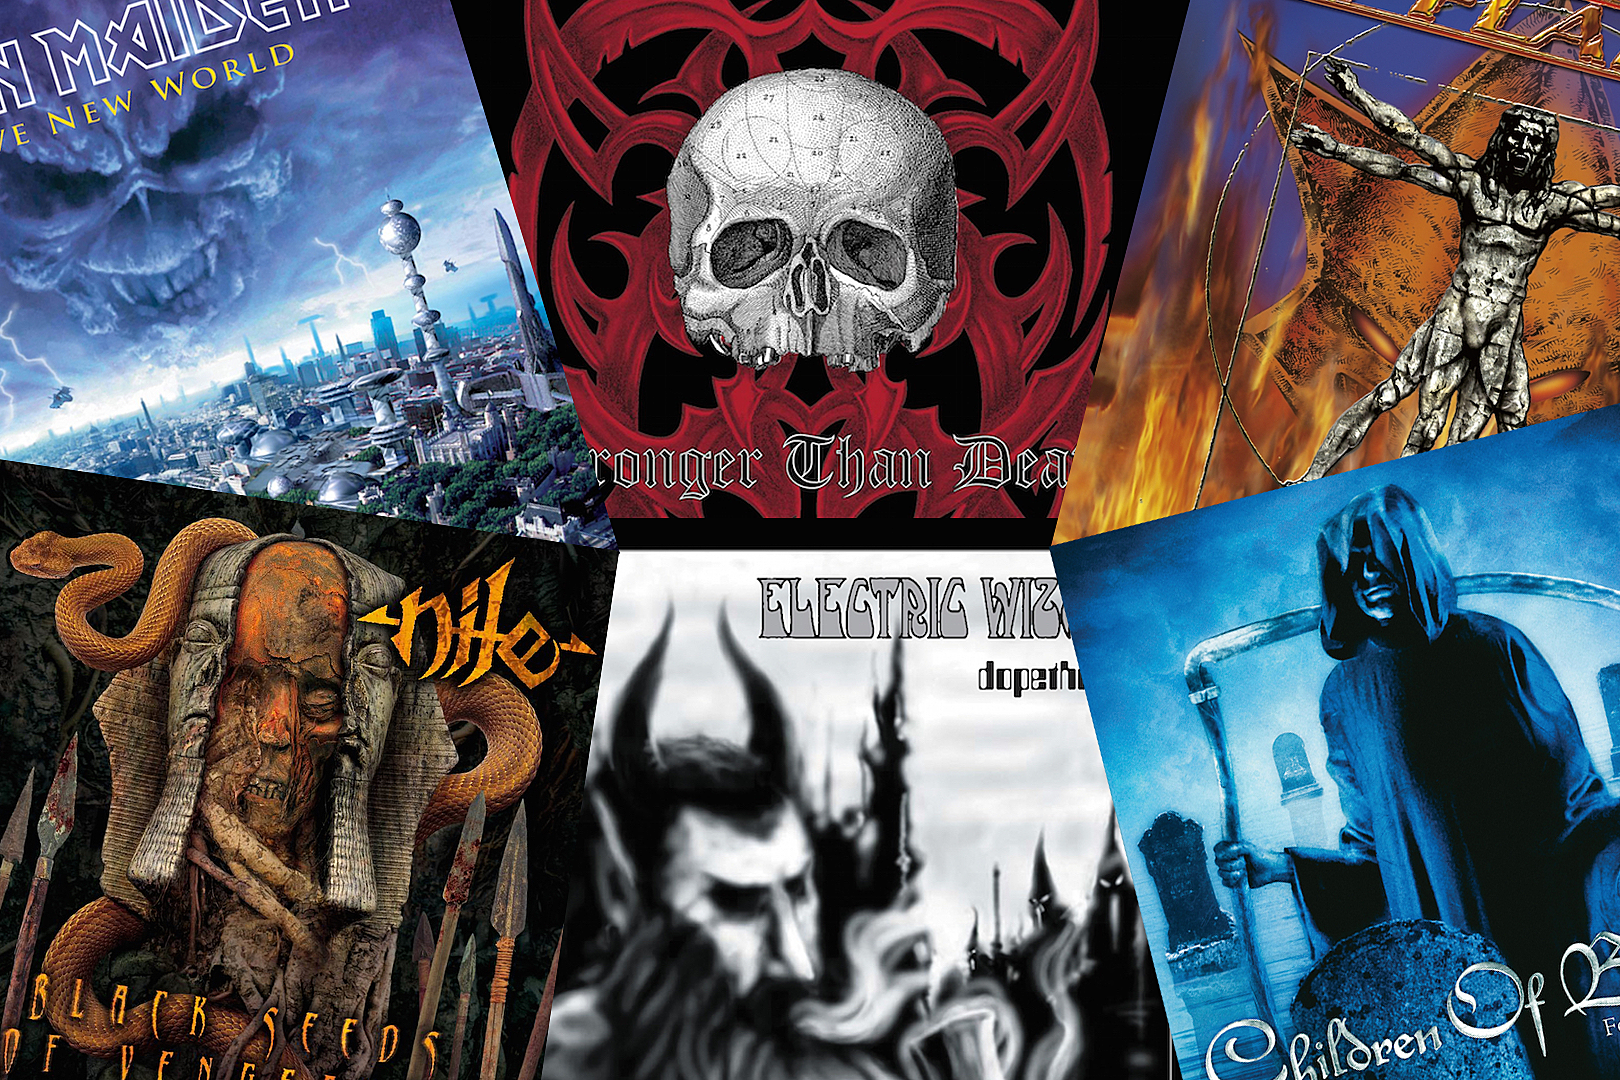 25 Best Metal Albums of 2000